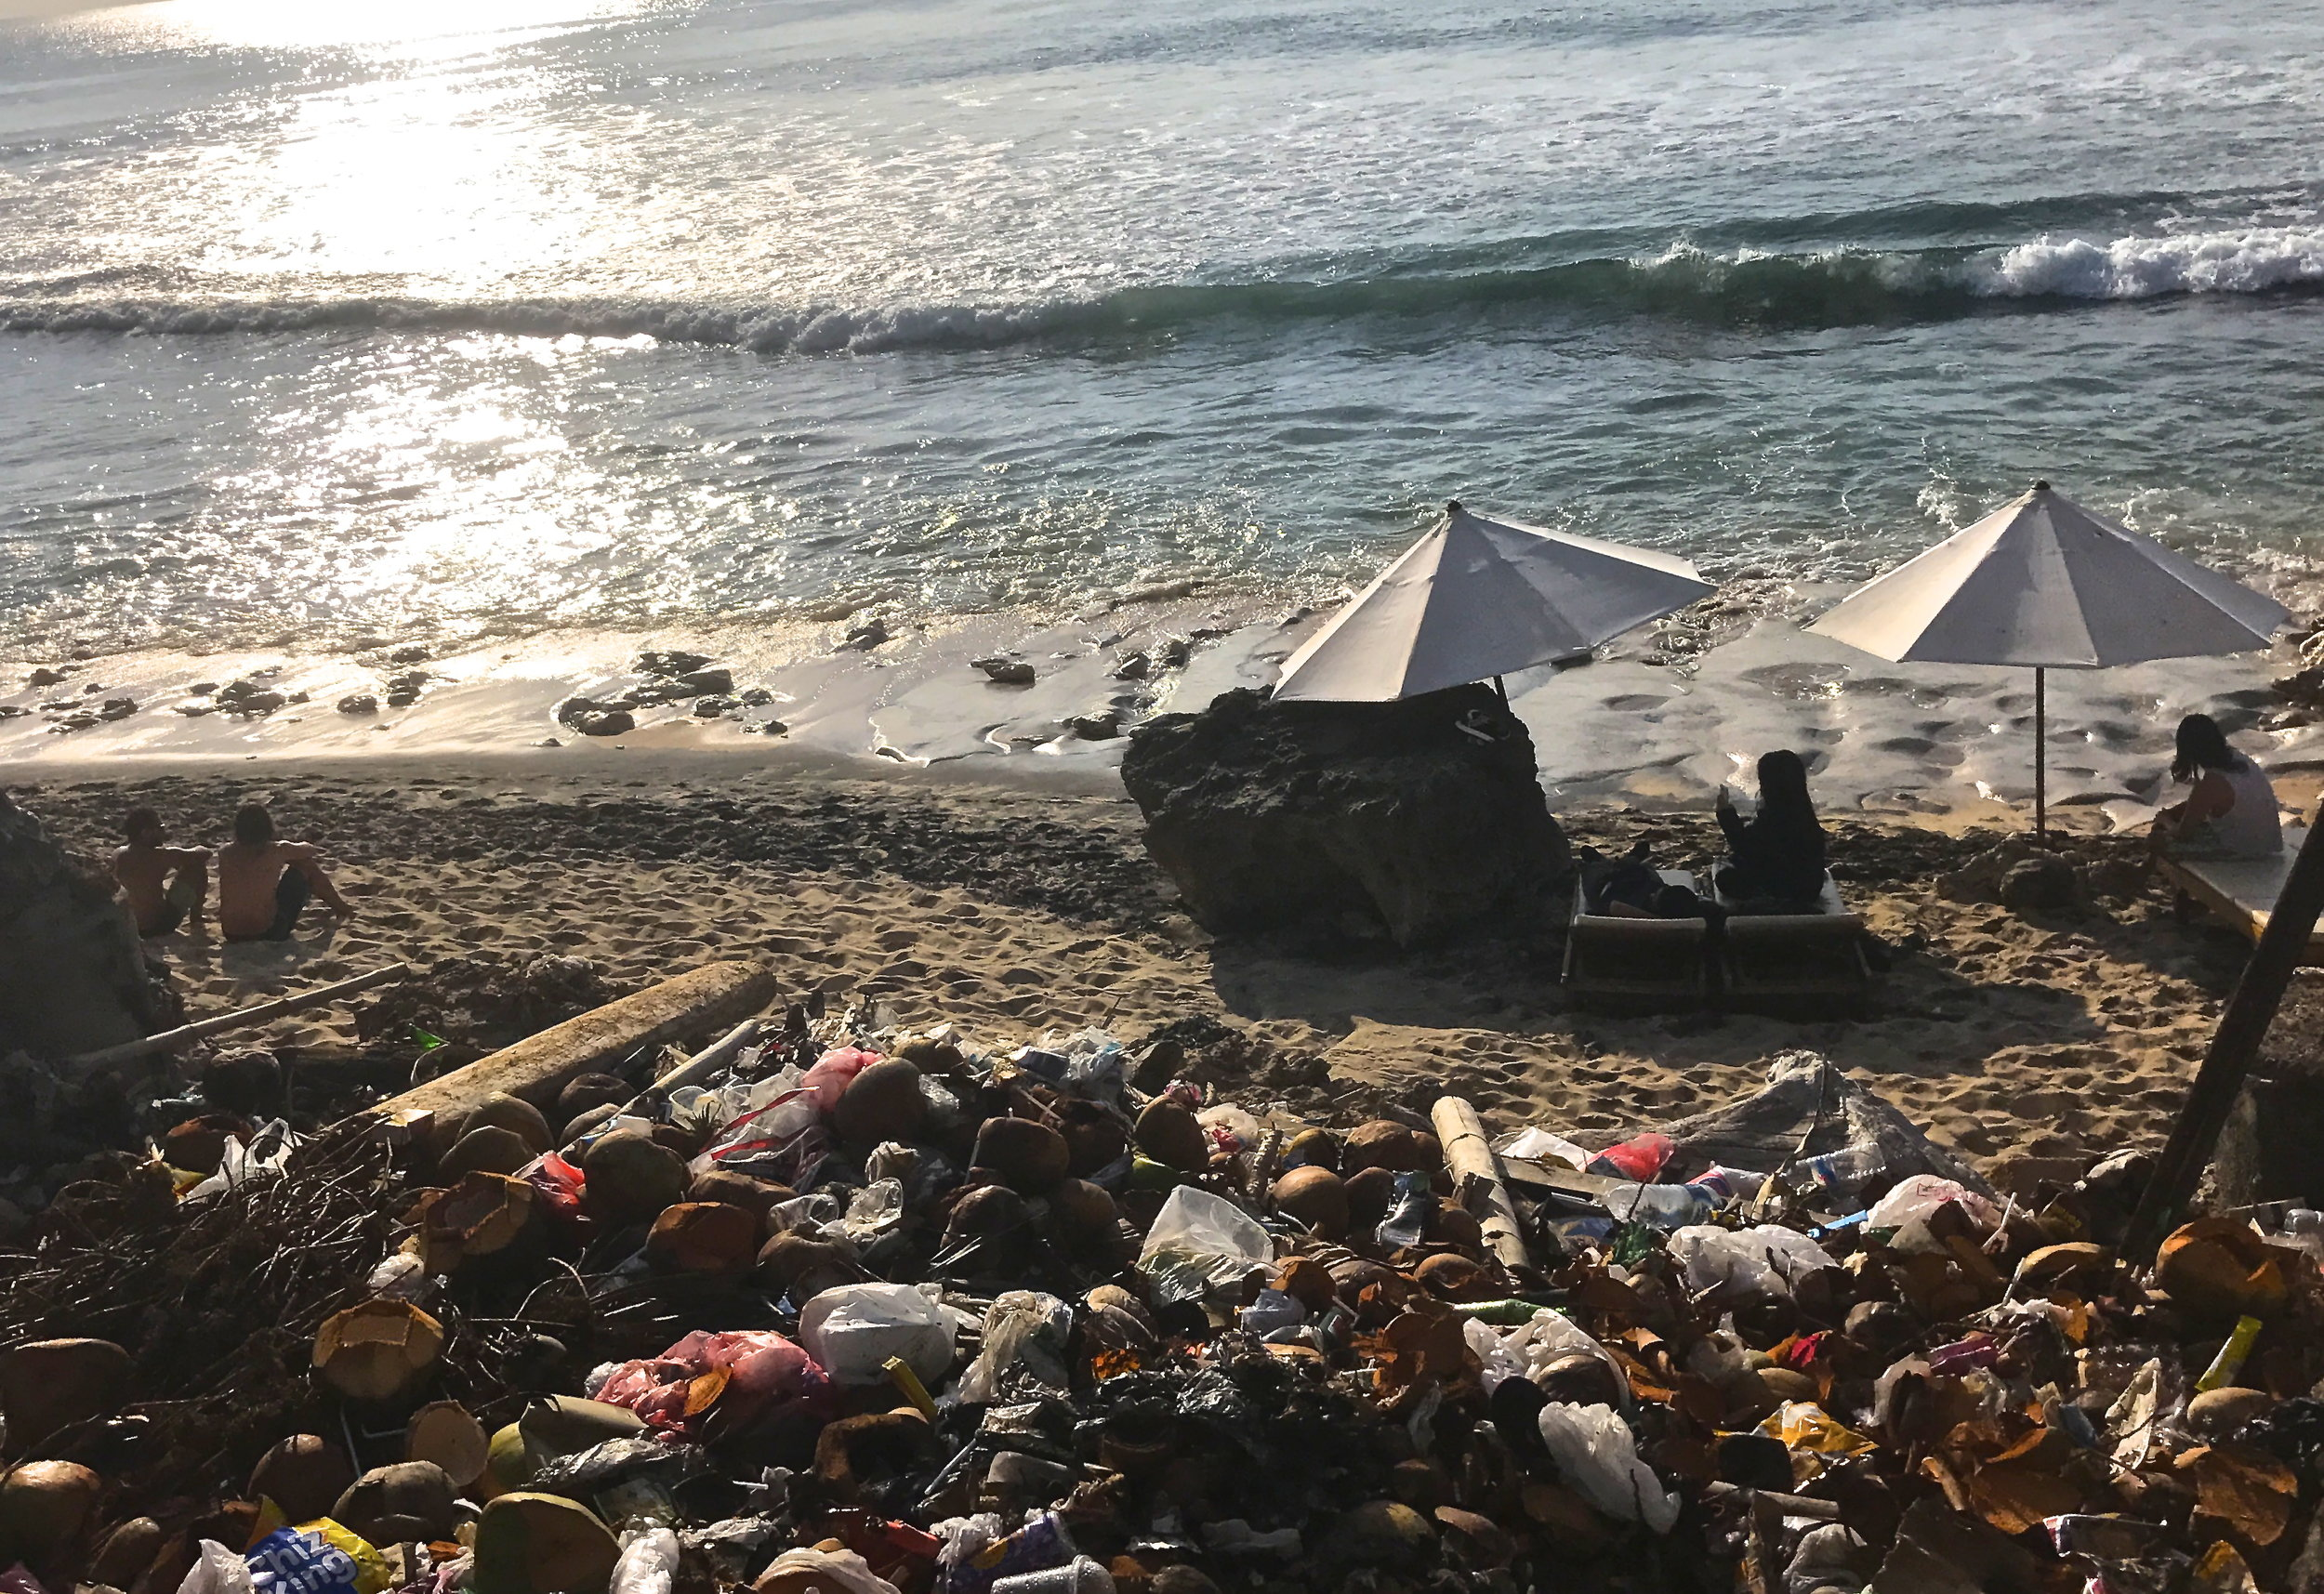 A trash pile on the shore of Balangan Beach in Bali, Indonesia. Heaps like this are burned routinely as one of the most common forms of waste management on the island.